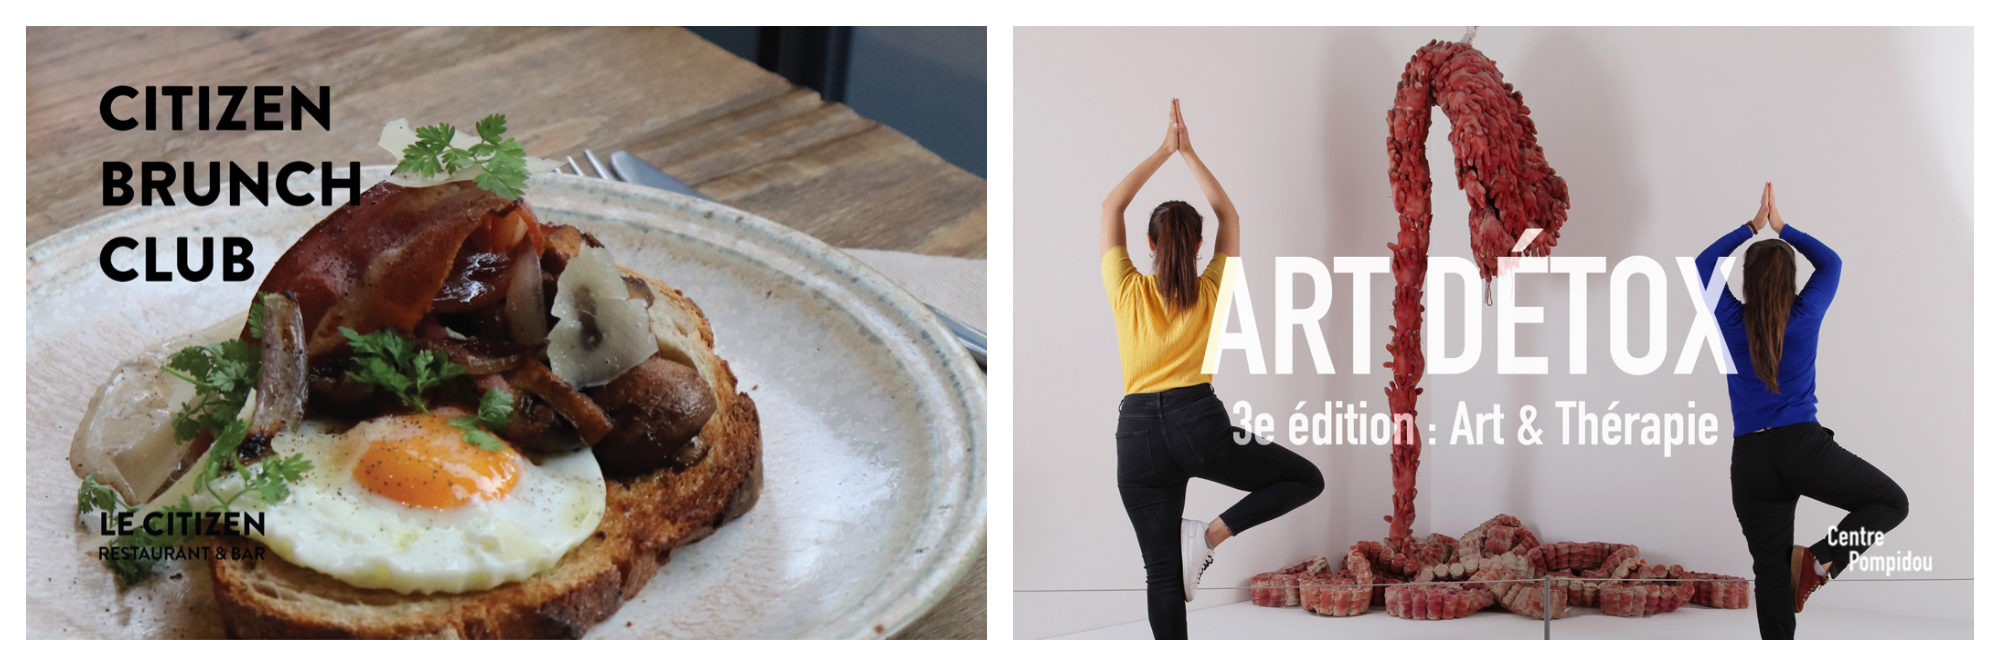 A poster for the Citizen Brunch Club with eggs and bacon on toast (left). A poster for event Art Detox with two people standing in tree pose, seen from the back with an art installation (right).